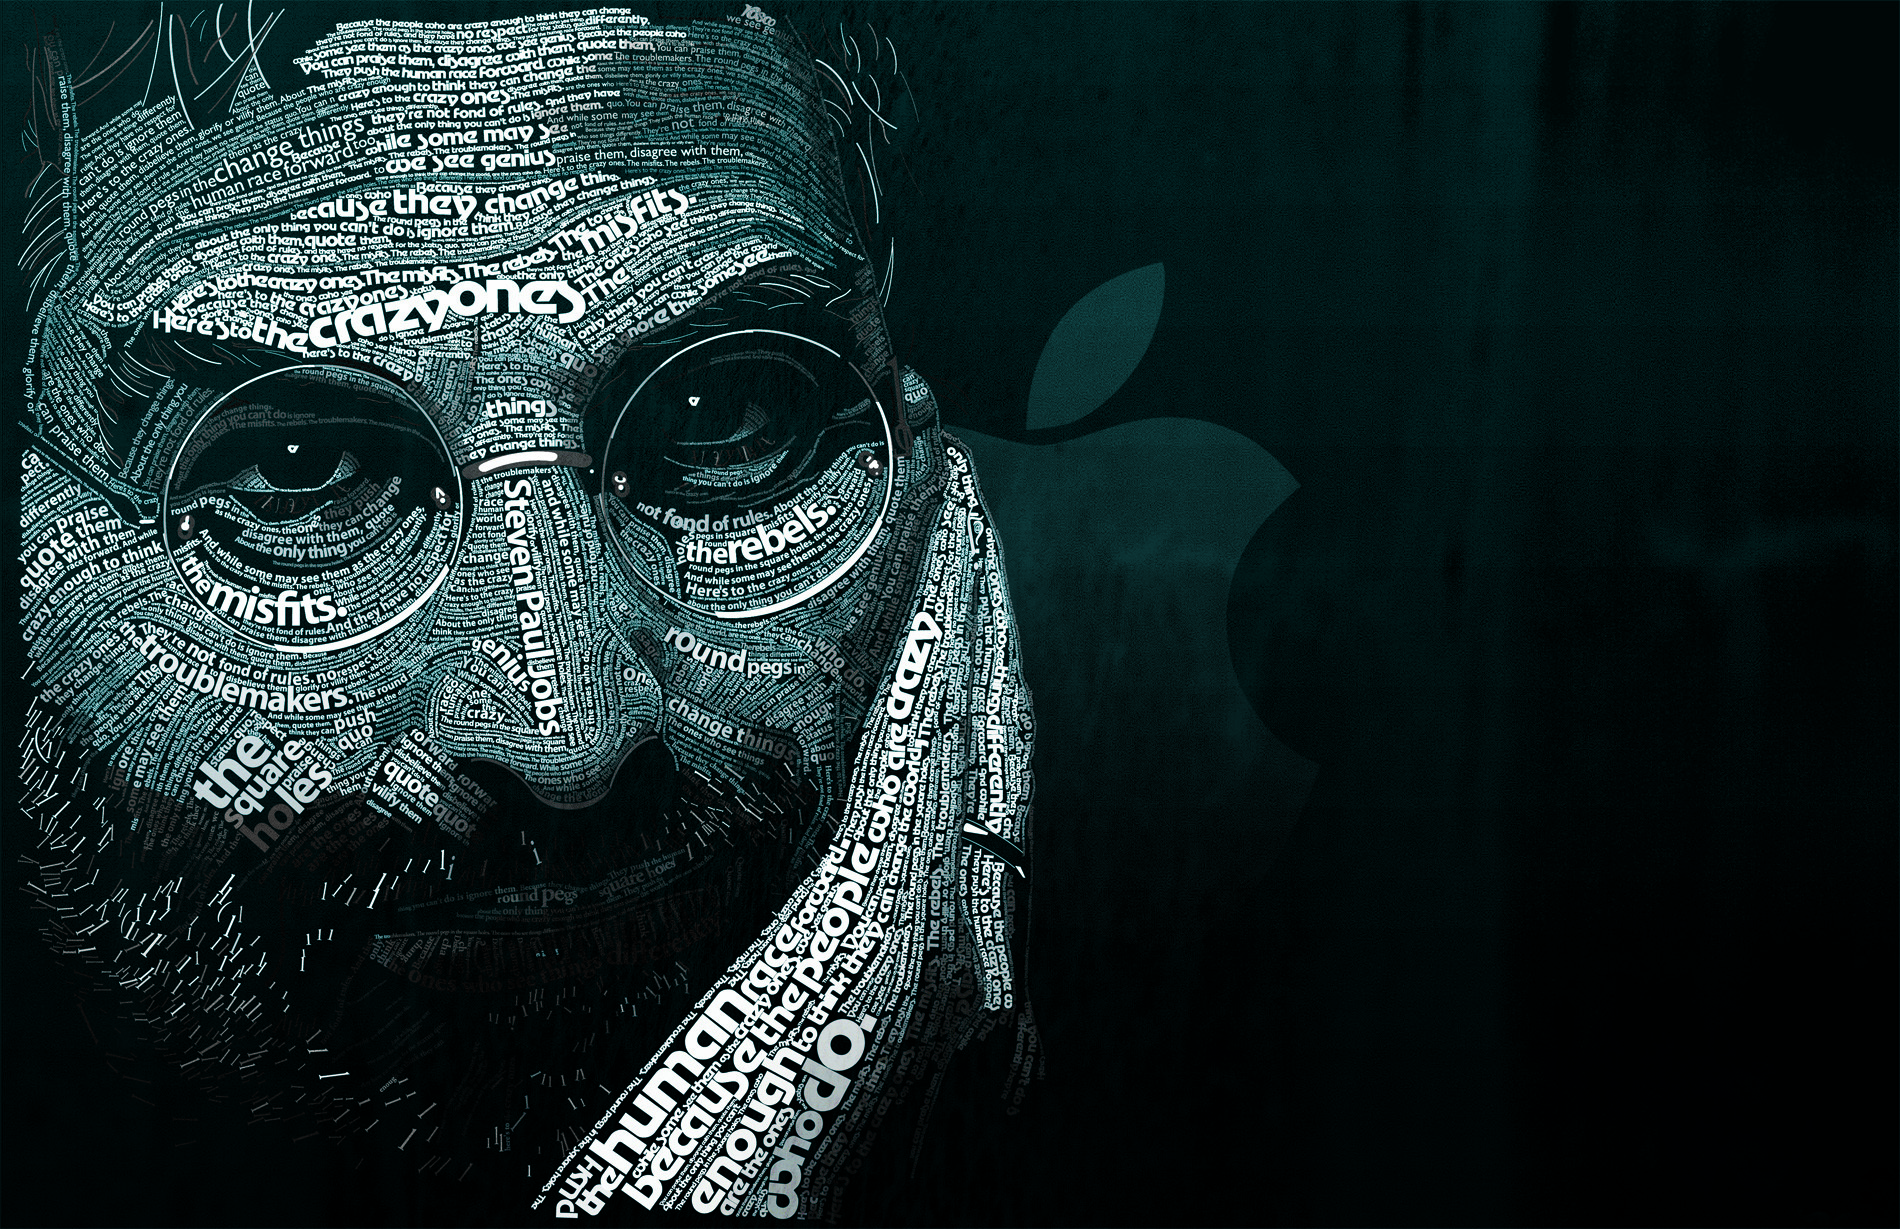 Typography Steve Jobs typographic HD Wallpaper